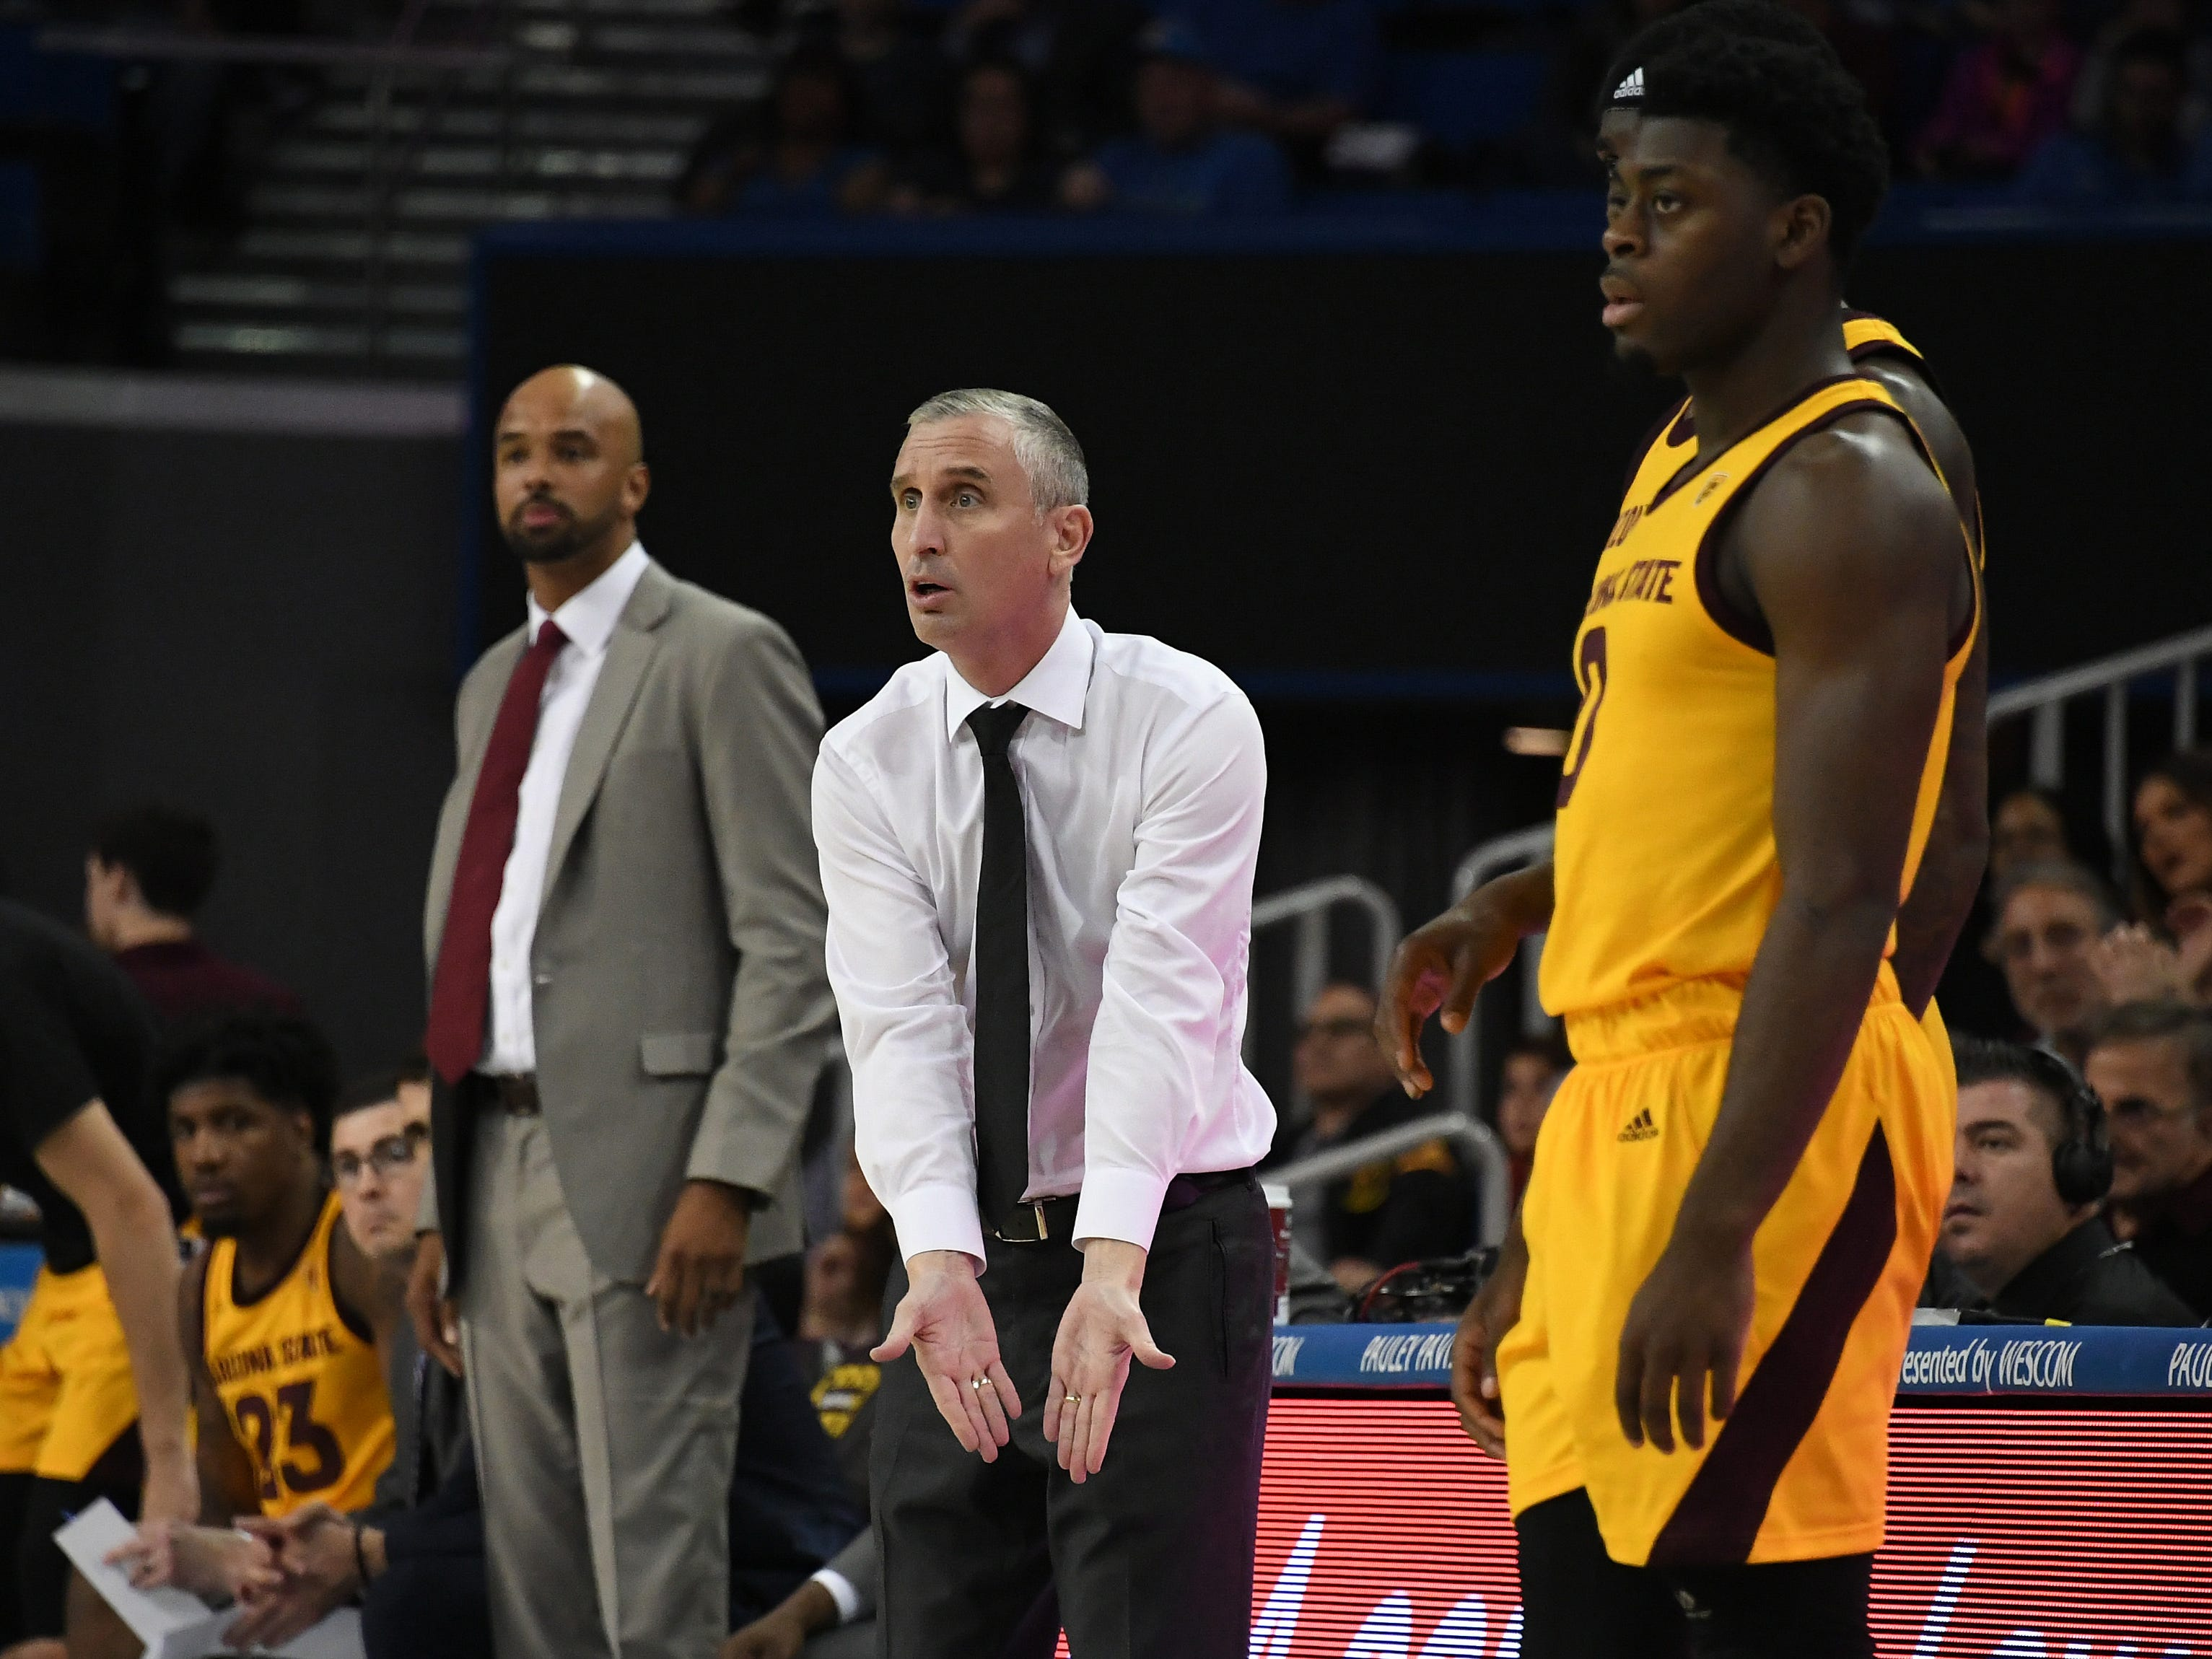 Jan 24, 2019; Los Angeles, CA, USA; Arizona State Sun Devils head coach Bobby Hurley (middle) reacts during the first half against the UCLA Bruins at Pauley Pavilion. Mandatory Credit: Richard Mackson-USA TODAY Sports